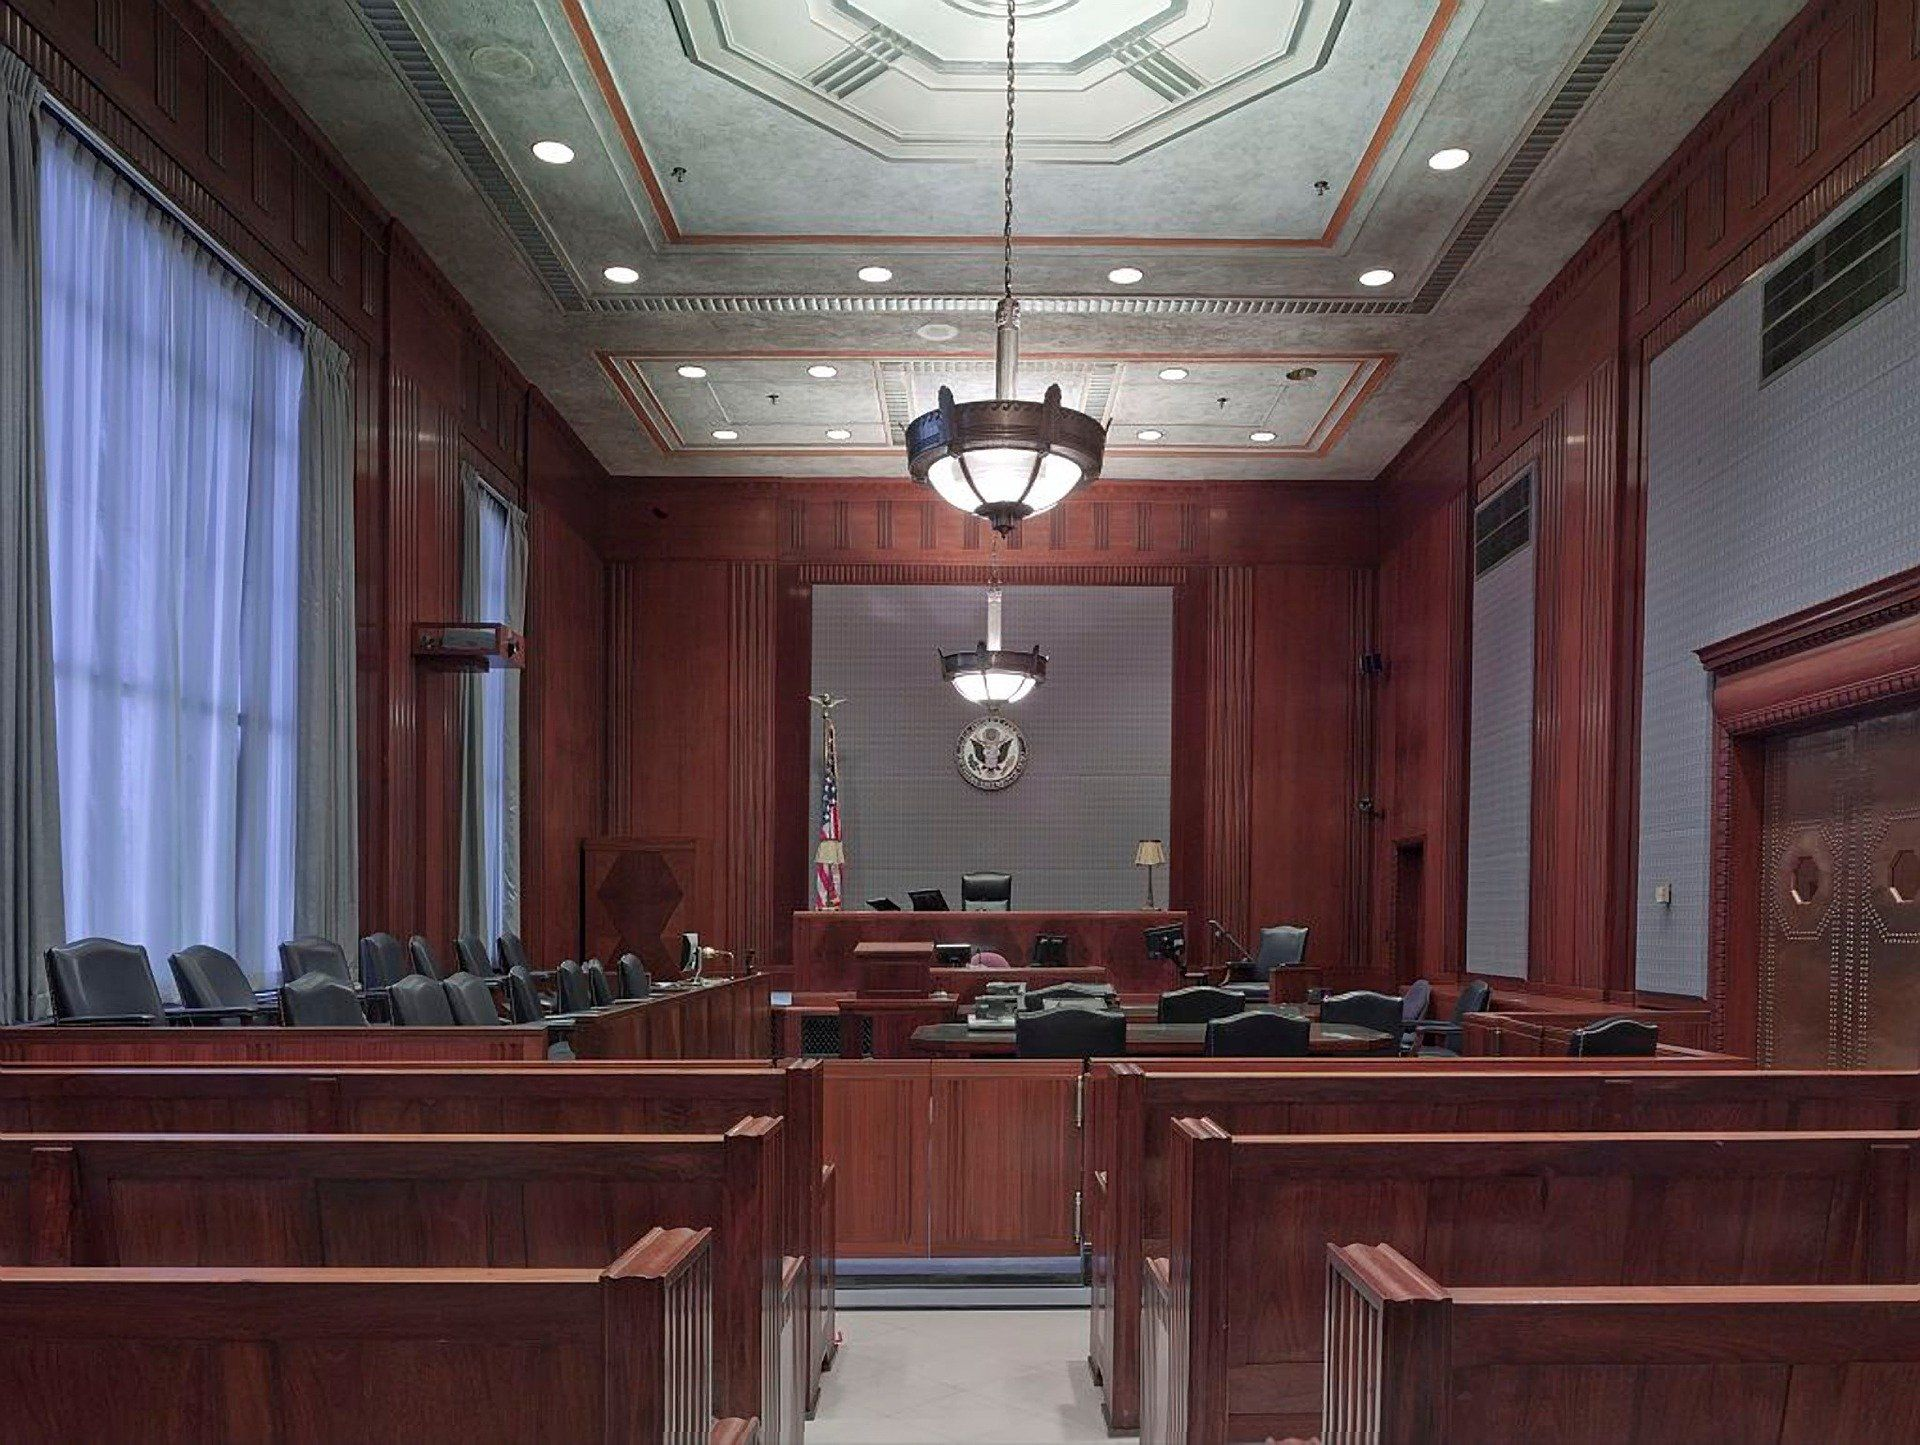 An empty courtroom. Nashville attorney David Randolph Smith will serve on a committee for multi-district litigation against Allergan.